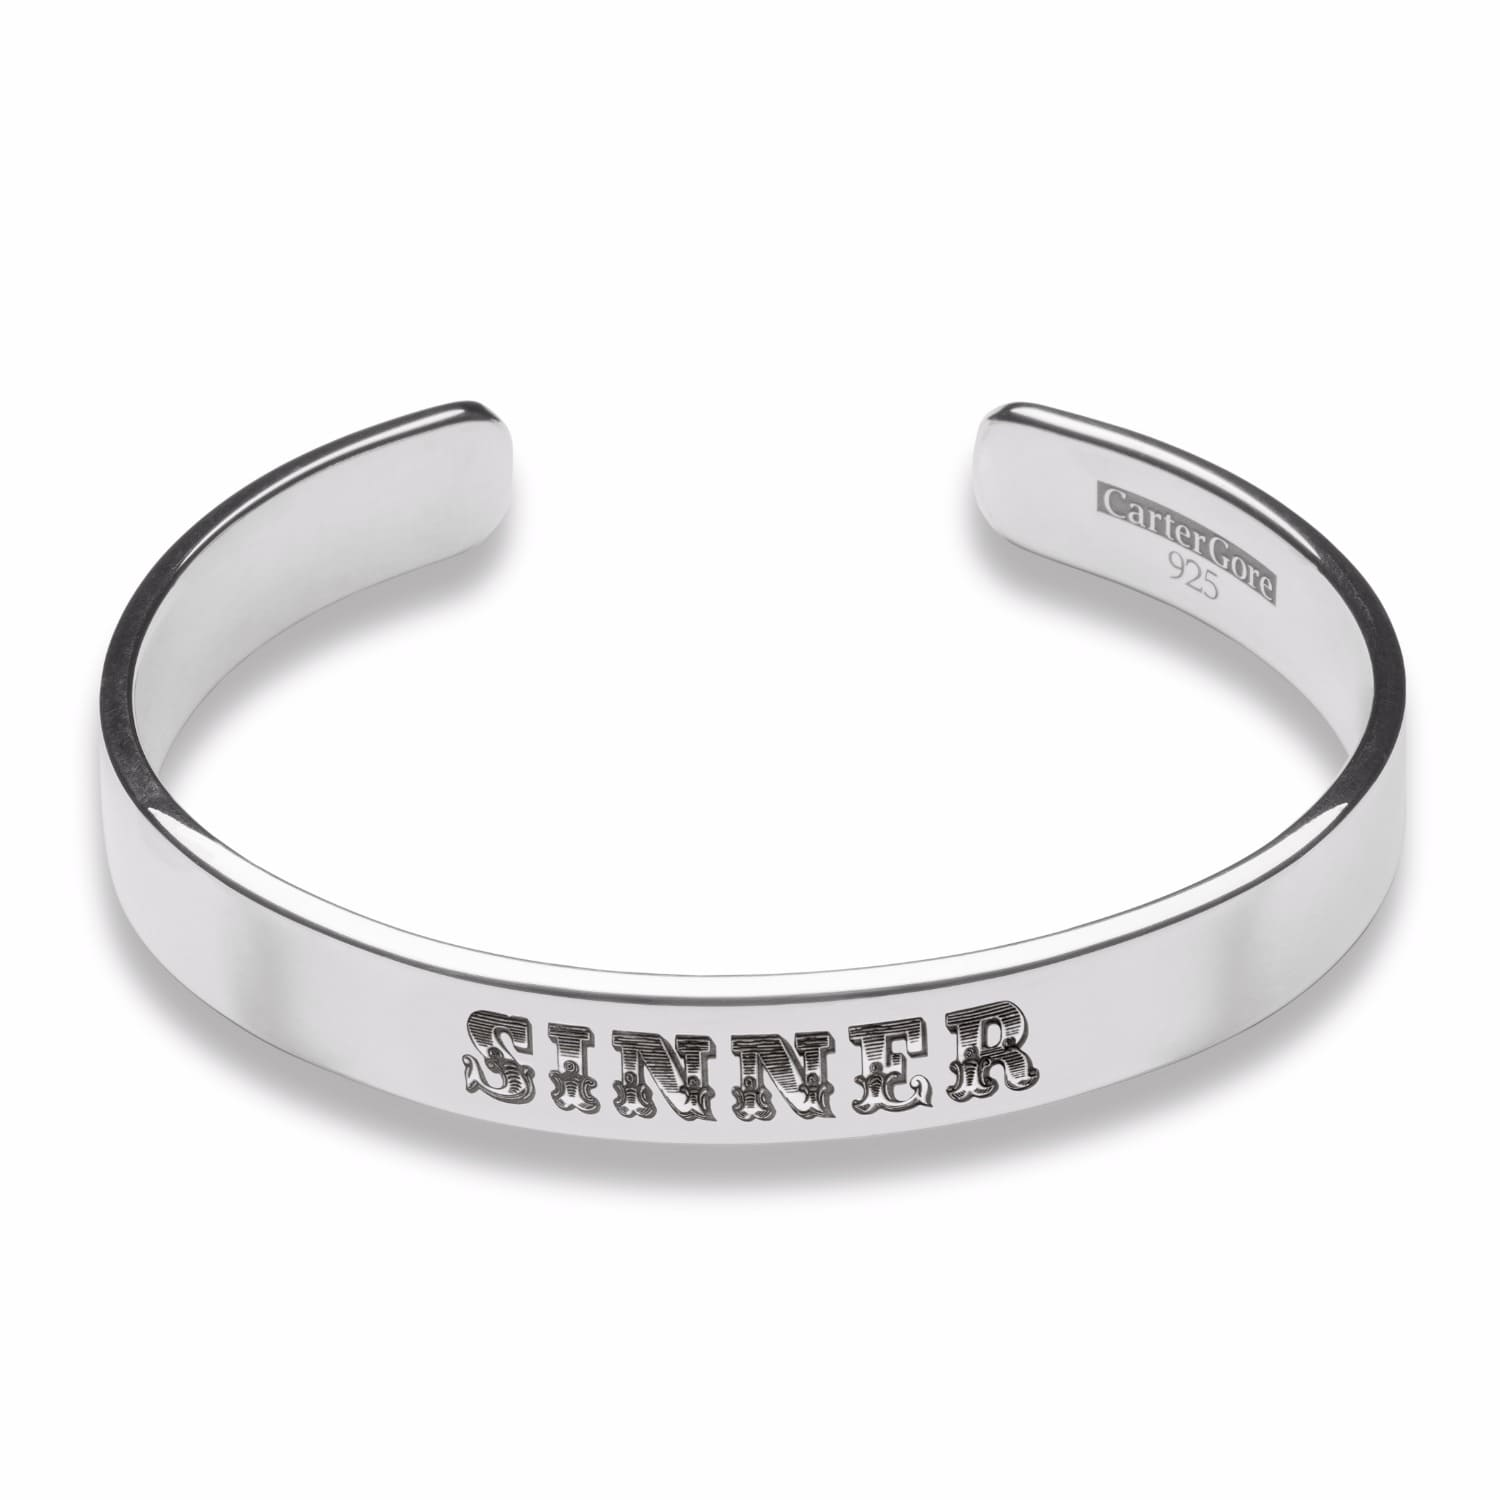 2940c89cafe Silver Thick Width Sinner Bangle | CarterGore | Wolf & Badger